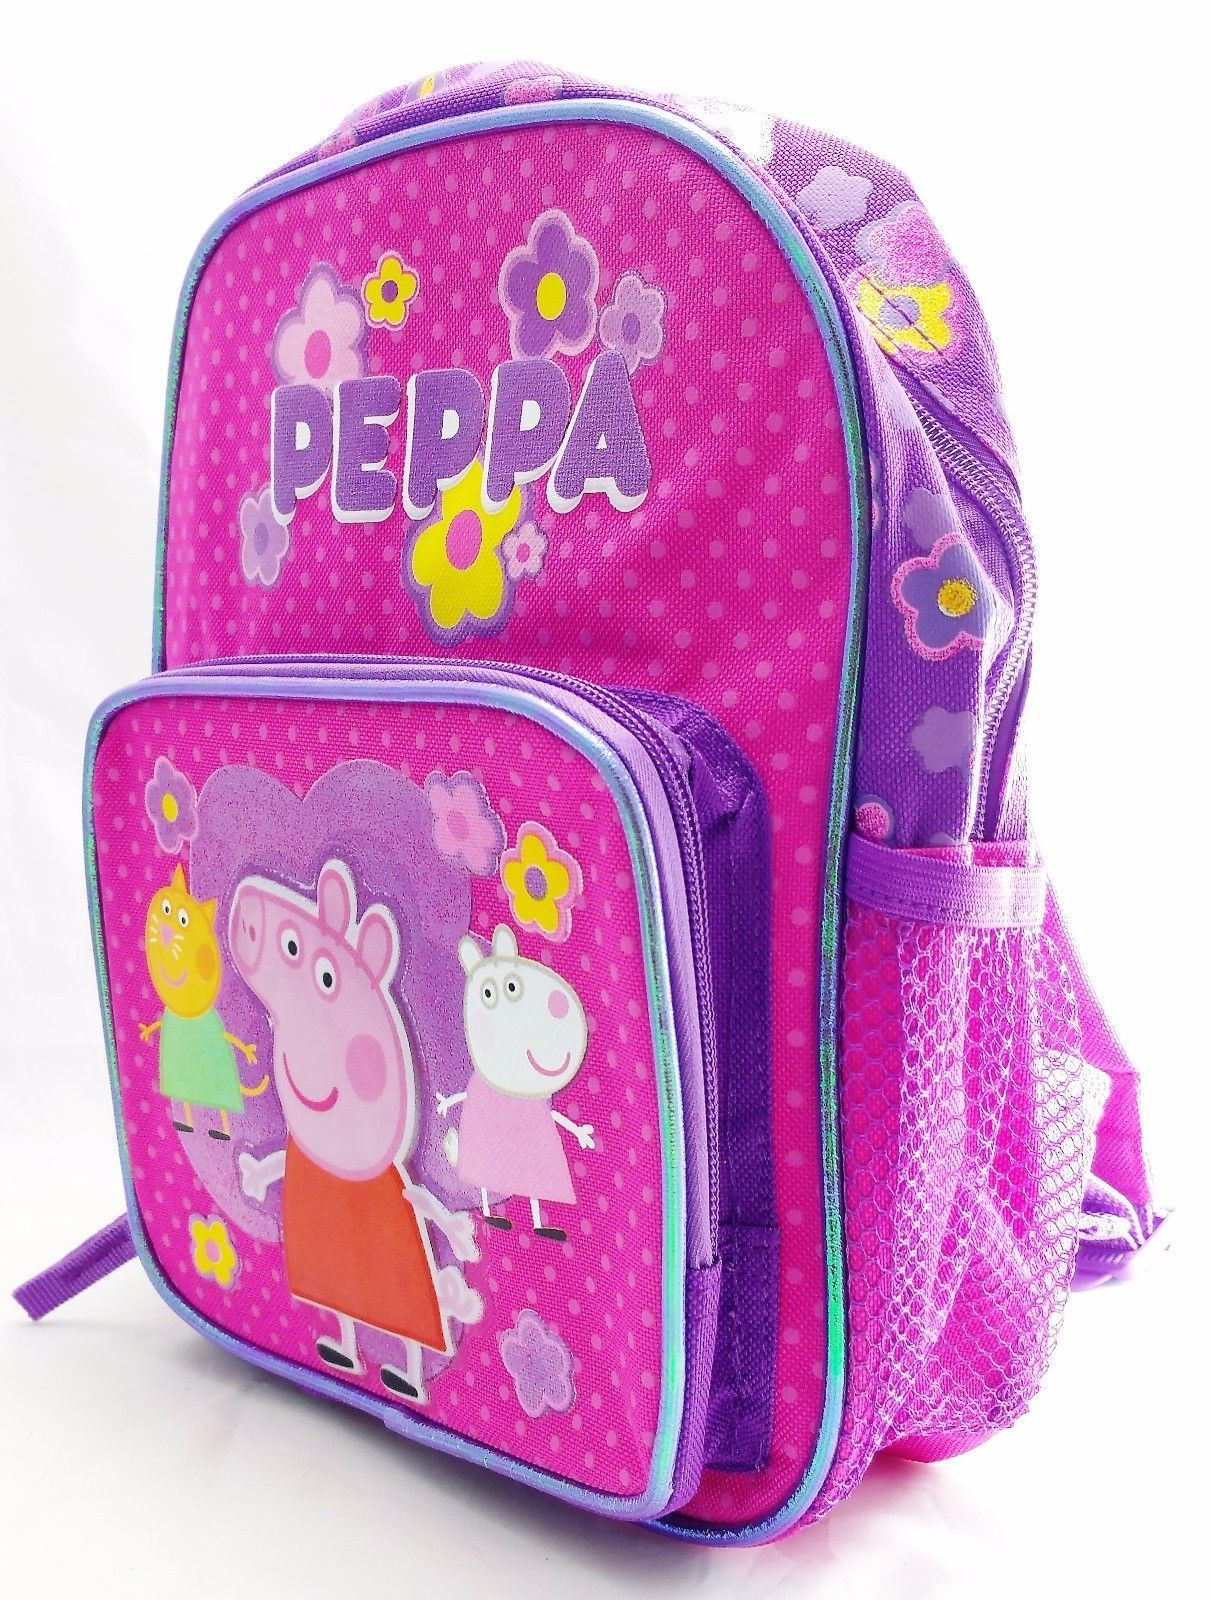 Incredible Mini Backpack Peppa Pig Pink W Friends 10 Girls Bag Ocoug Best Dining Table And Chair Ideas Images Ocougorg